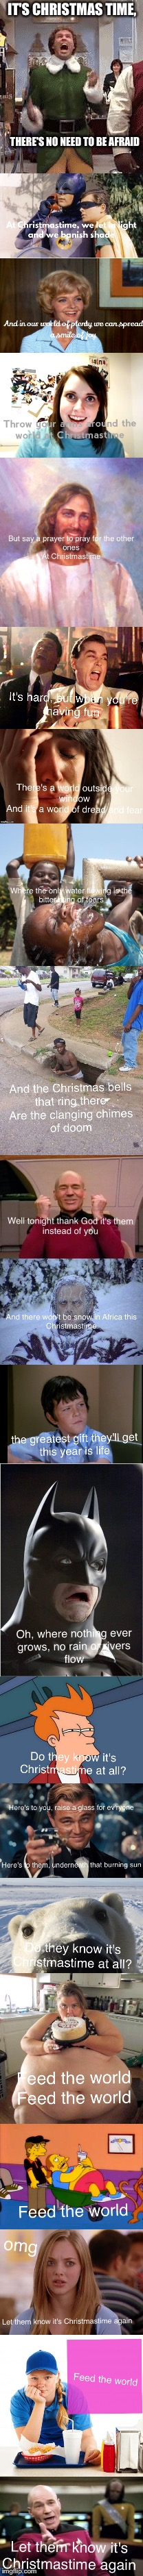 Merry Christmas-you'll need glasses to read this  | IT'S CHRISTMAS TIME, THERE'S NO NEED TO BE AFRAID | image tagged in christmas | made w/ Imgflip meme maker